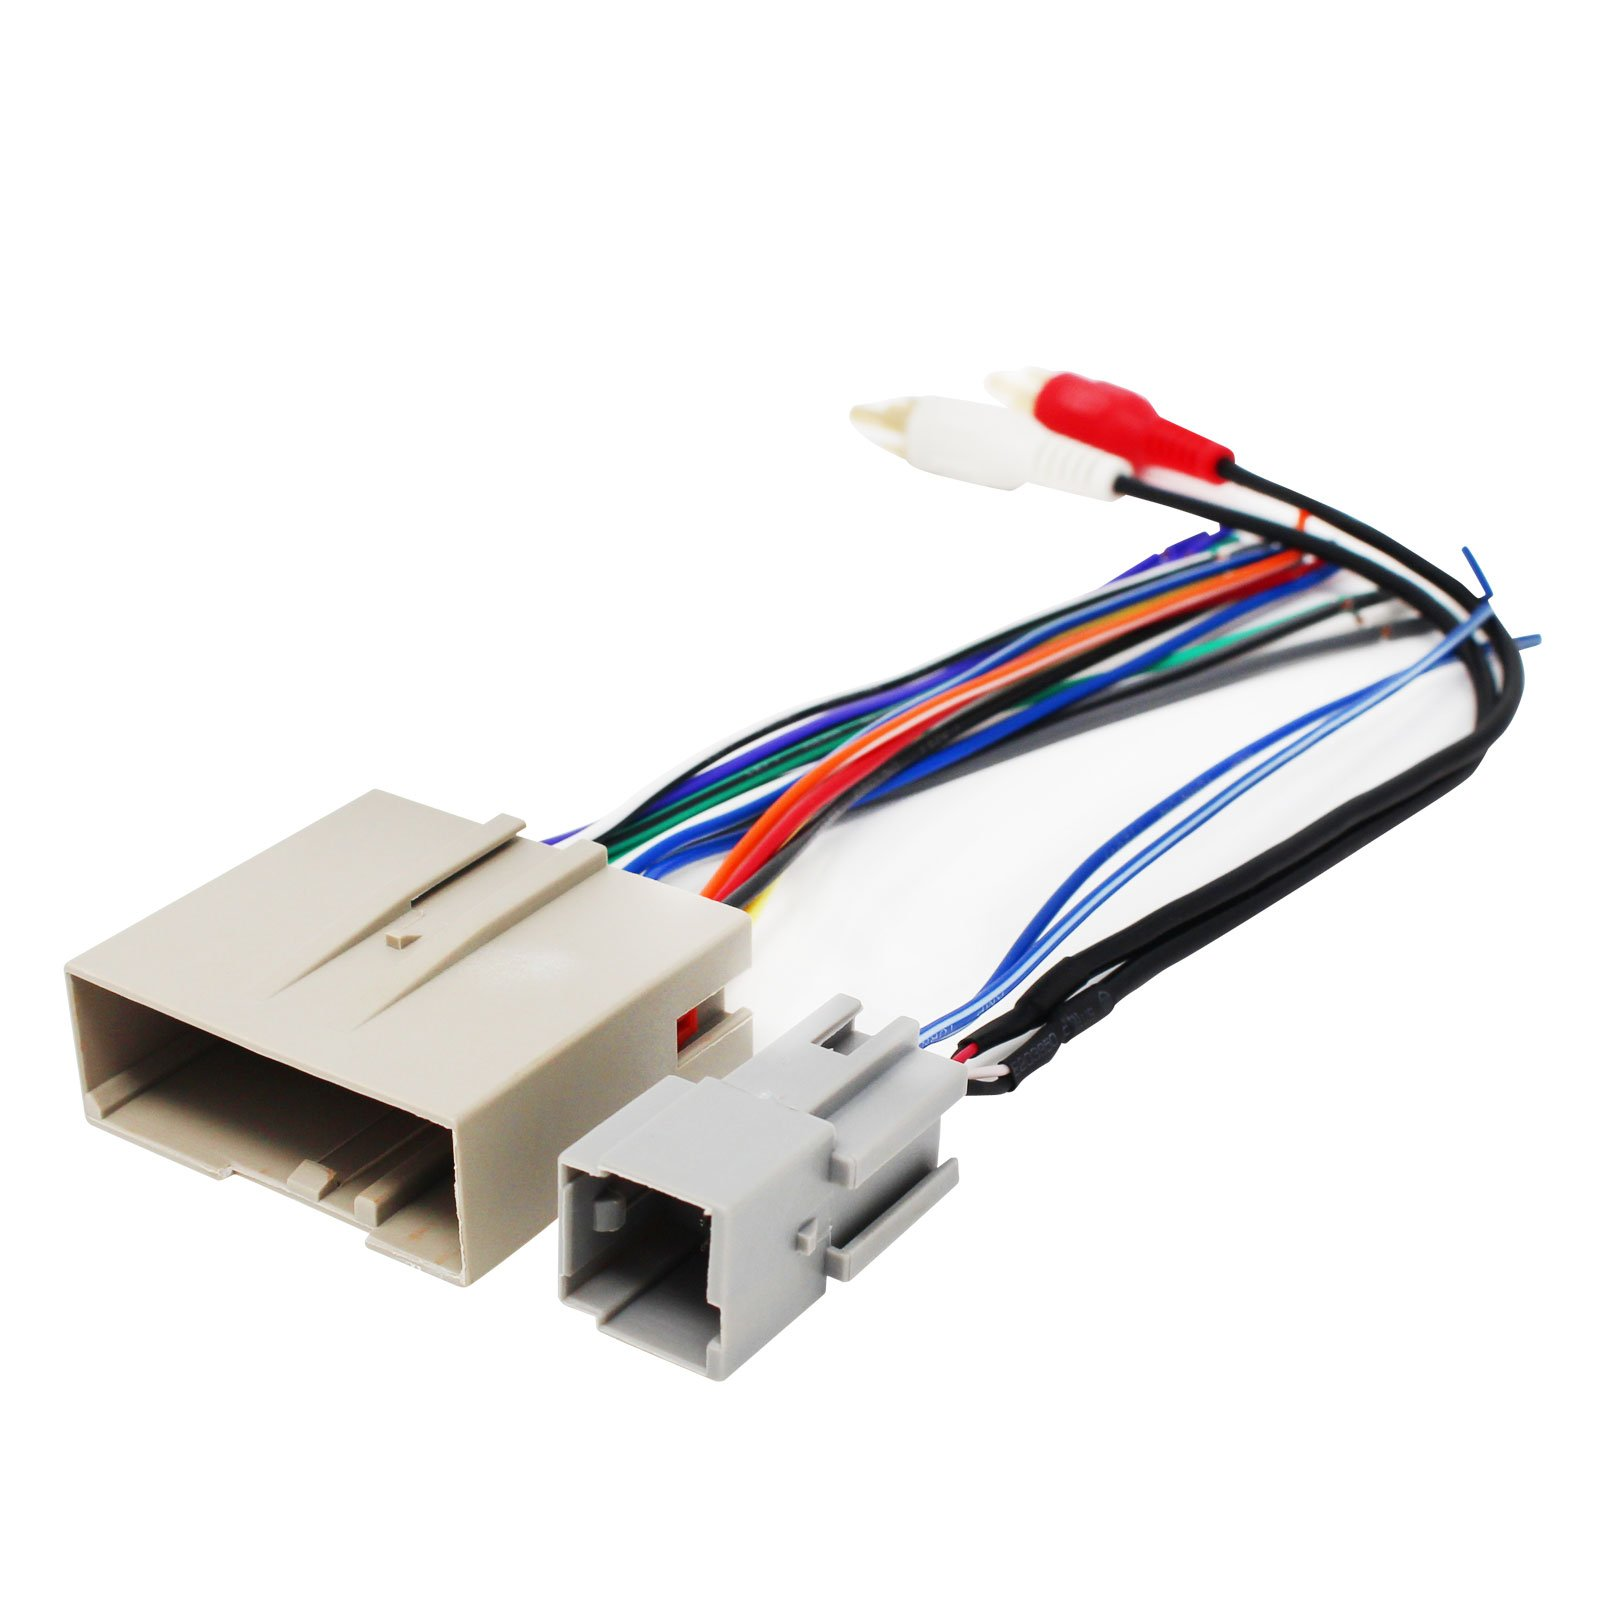 Replacement Radio Wiring Harness for 2004 Ford F-150 Lariat Extended Cab Pickup 4-Door 5.4L - Car Stereo Connector